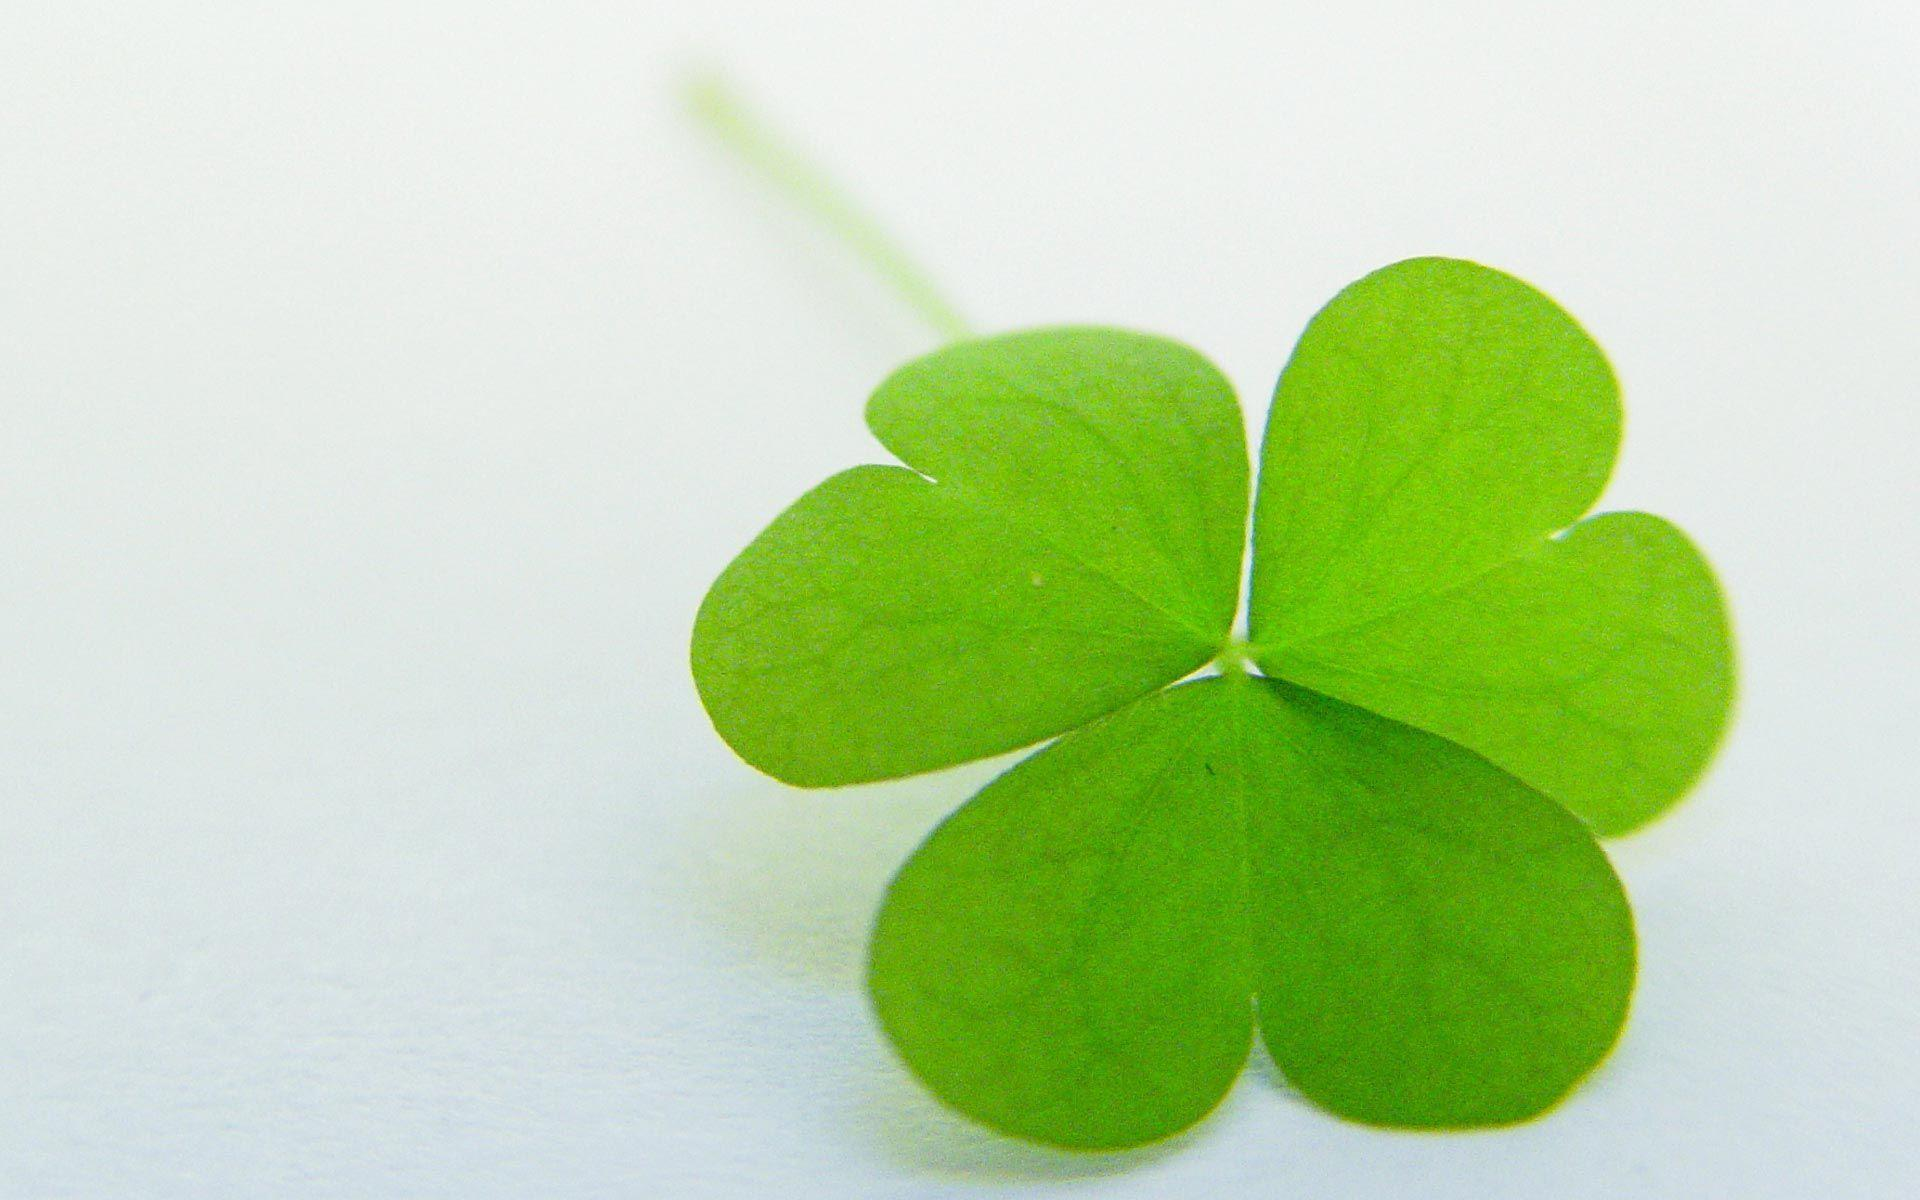 Four Leaf Clover Backgrounds Wallpapers